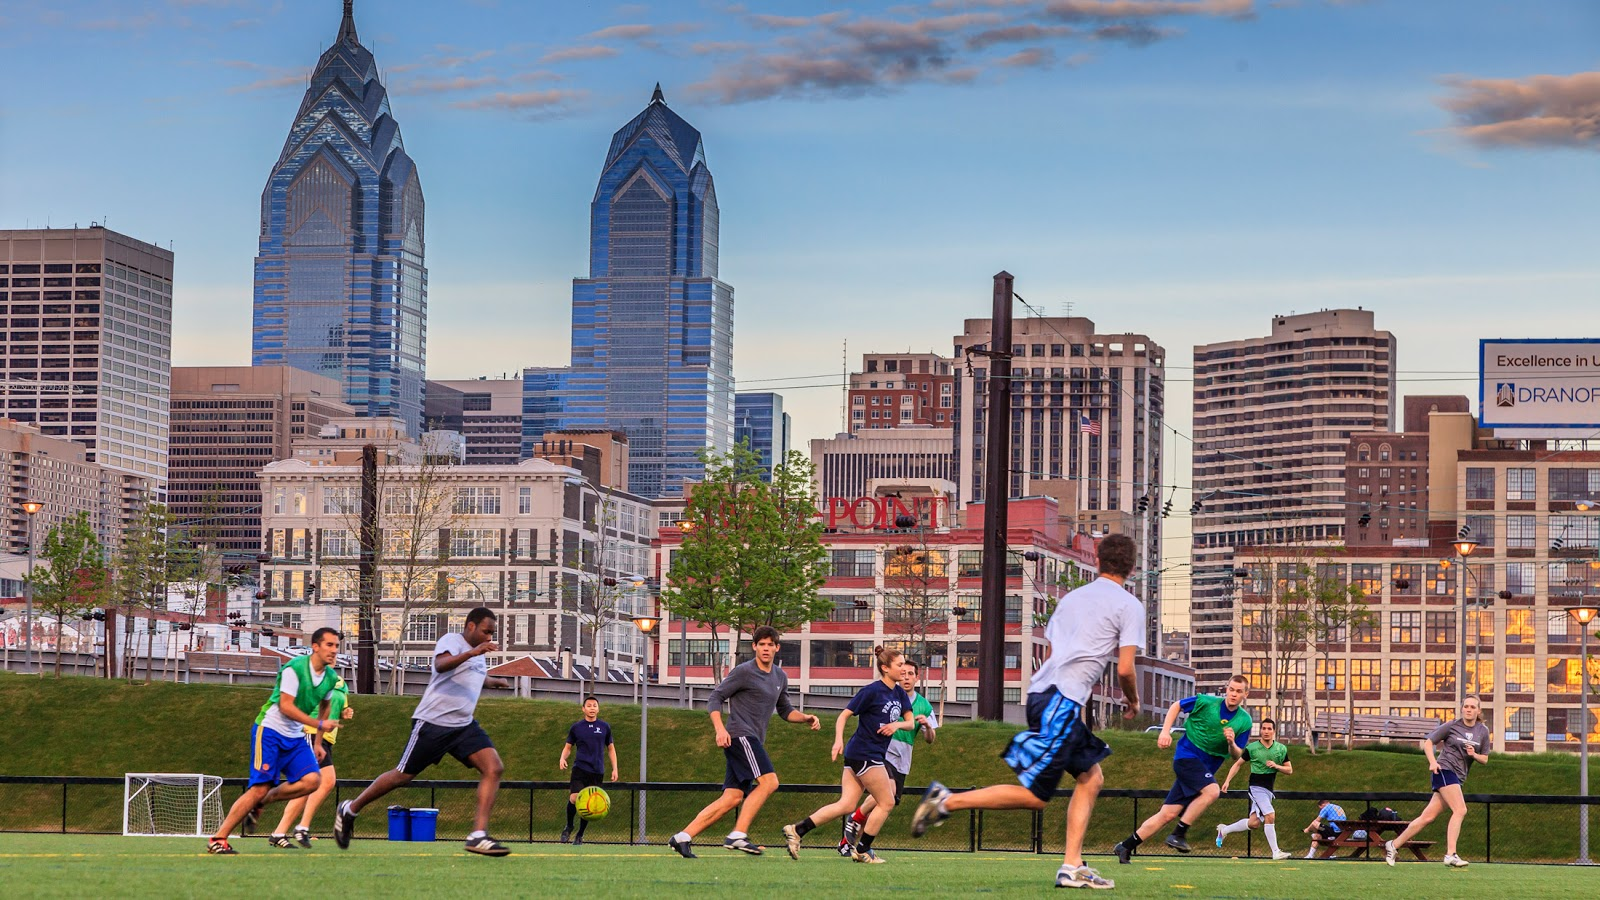 Penn students playing soccer